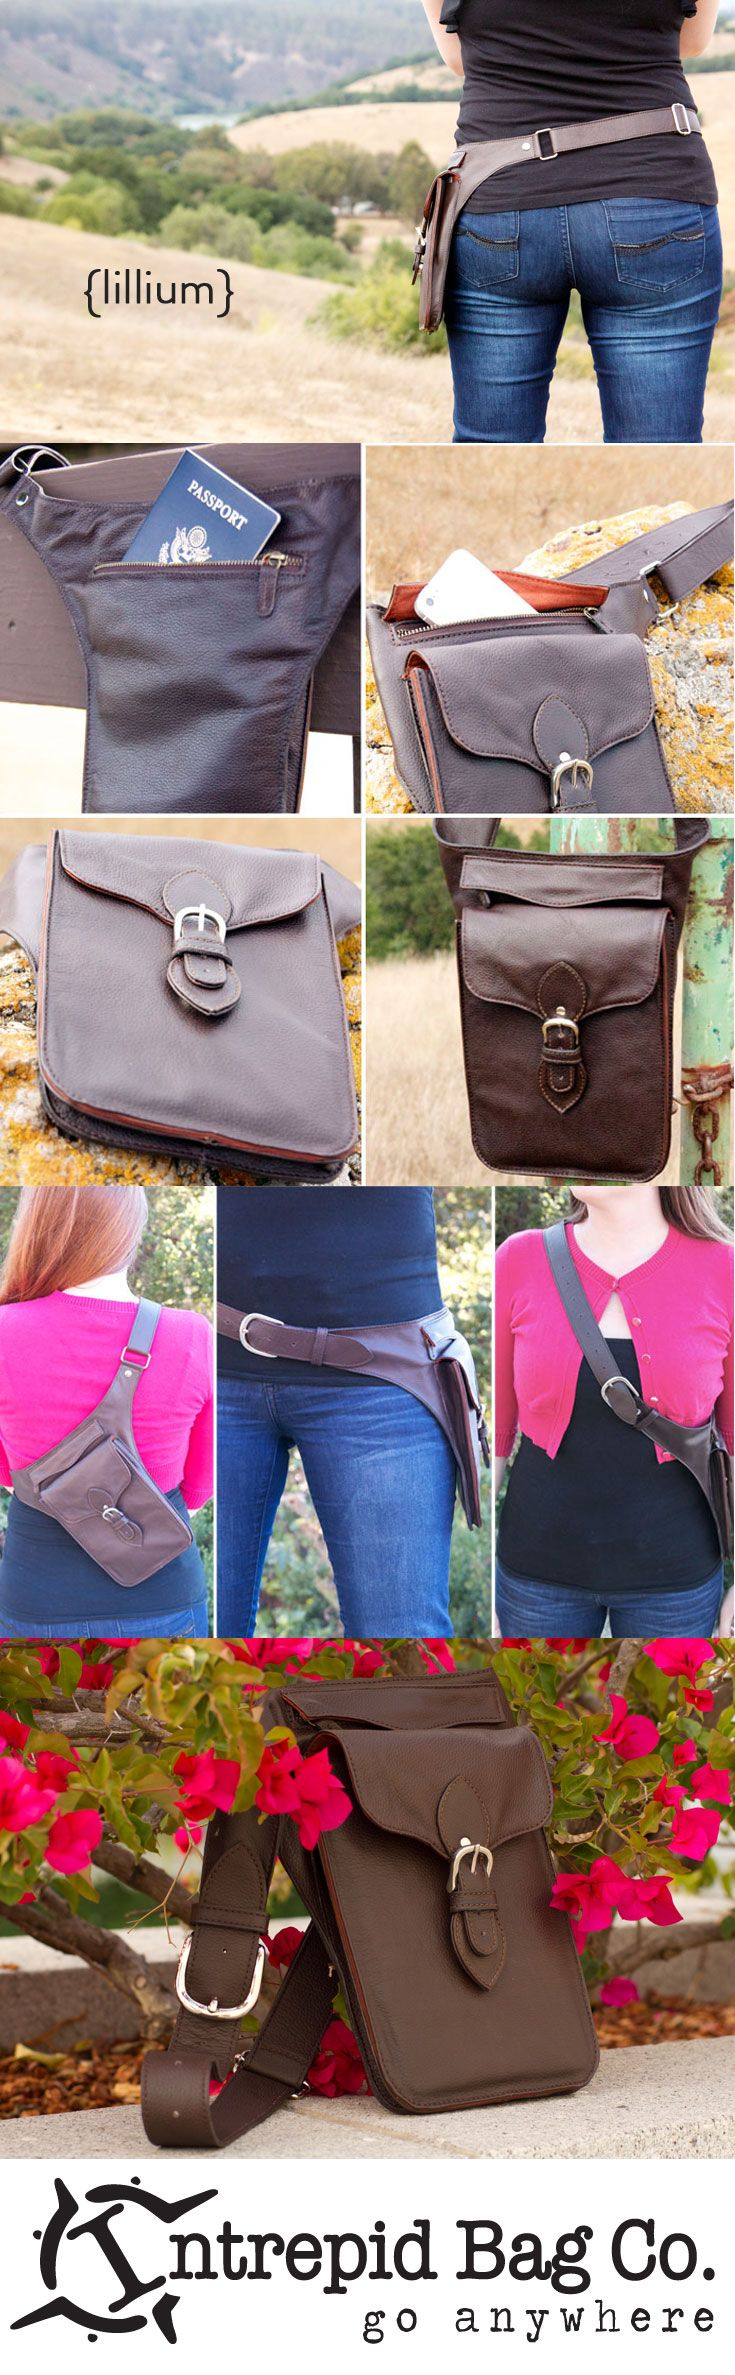 Lillium by Intrepid Bag Co. Kickstart now! http://kck.st/1dO4LVI ... must have this!!!!! AS